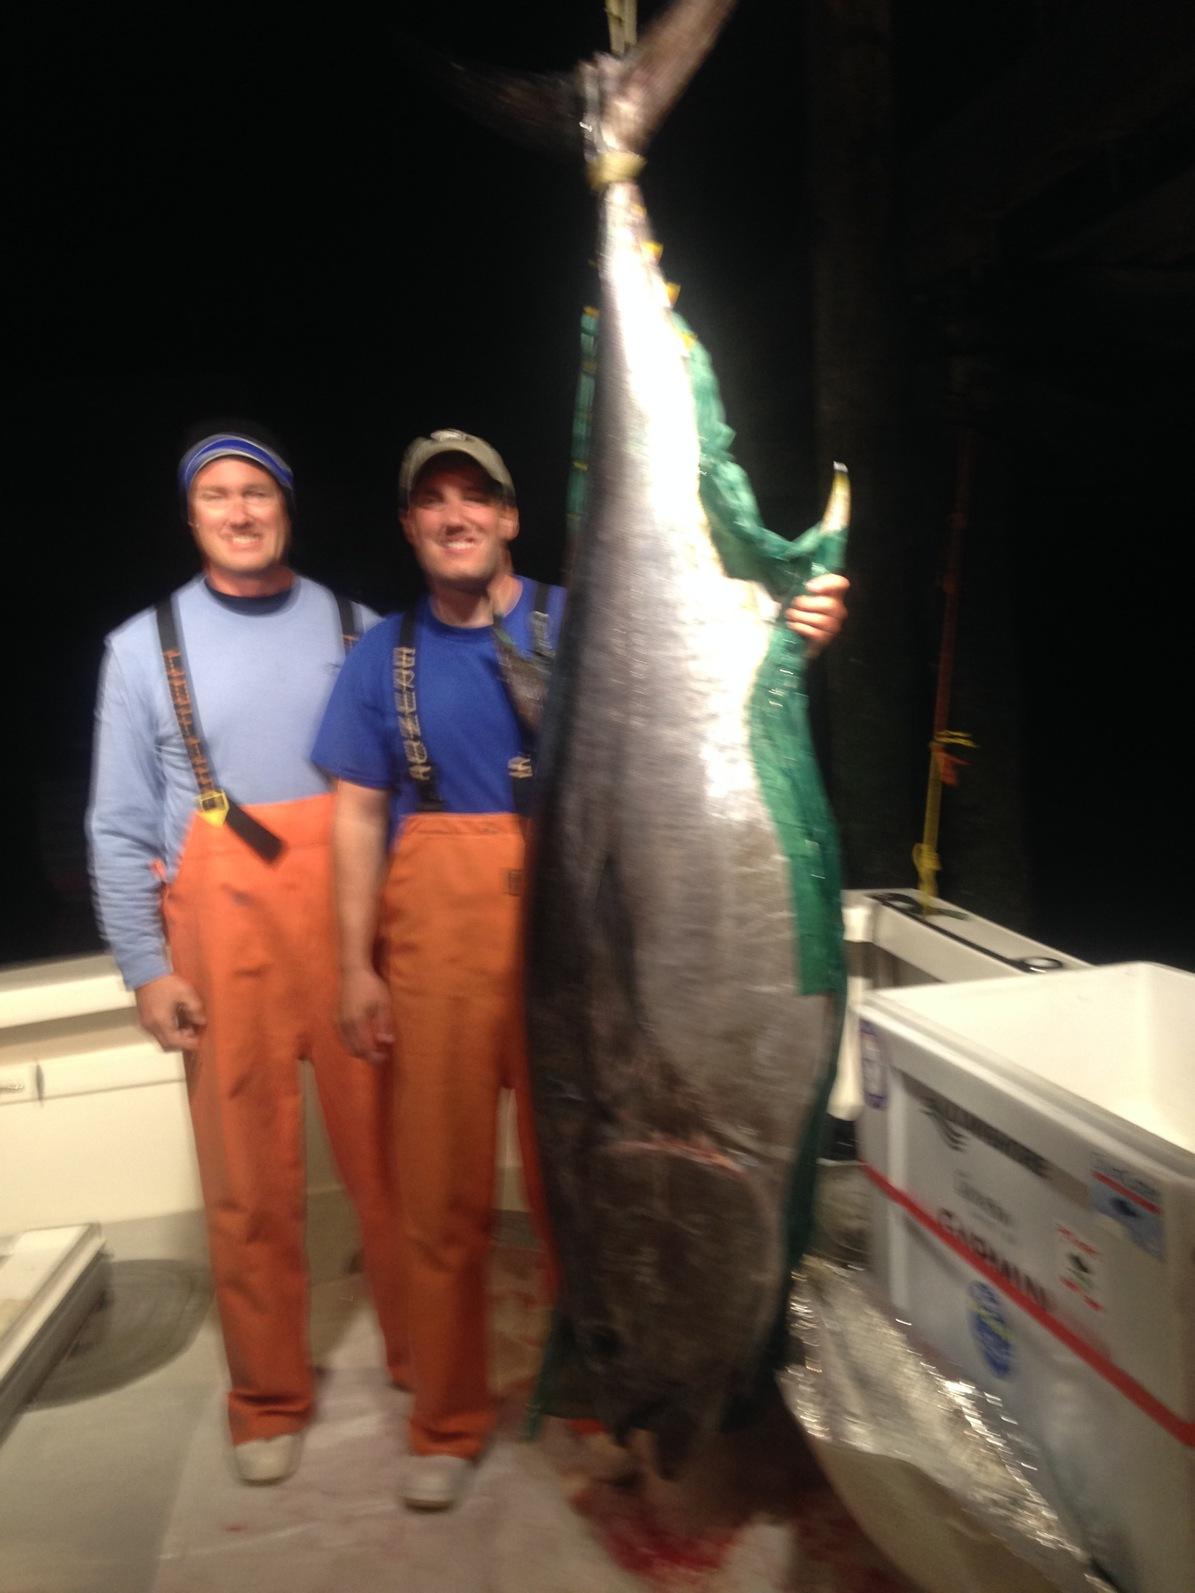 Sweet Dream Sportfishing: Tuna Charter